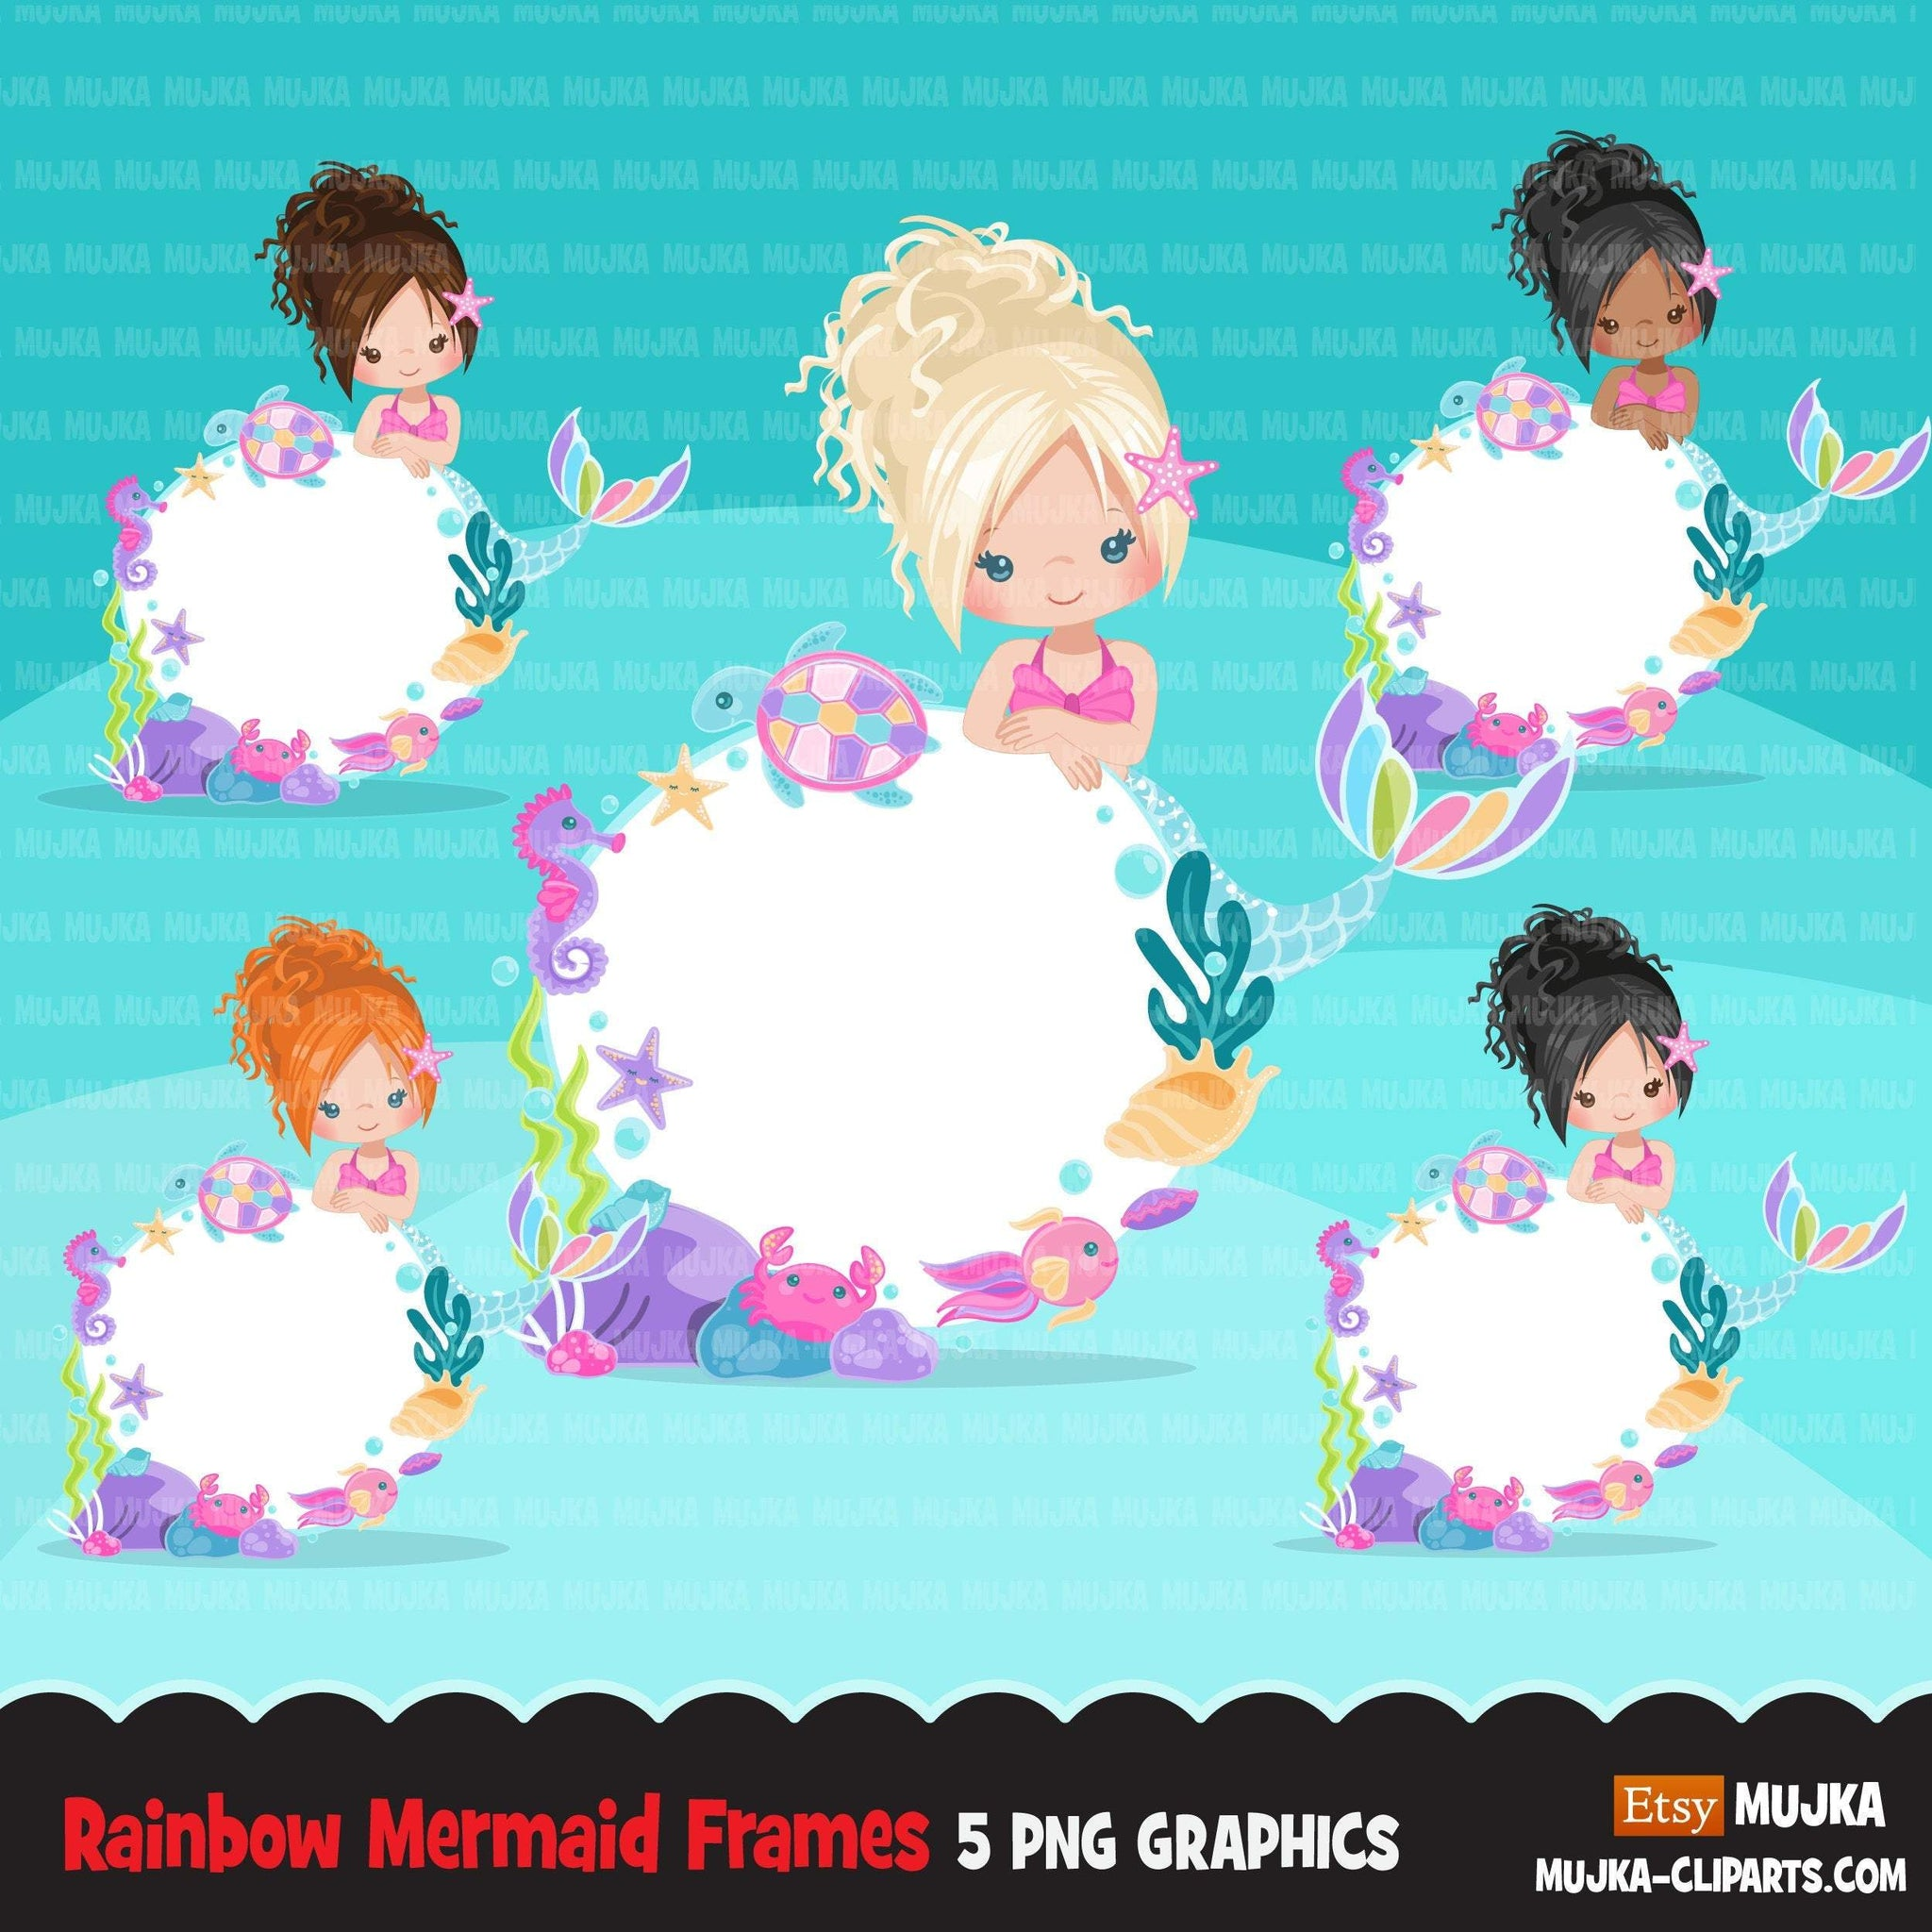 Mermaid clipart, cute underwater frame, pastel rainbow mermaid graphics, mermaid princess, rainbow birthday party, girl clip art, summer